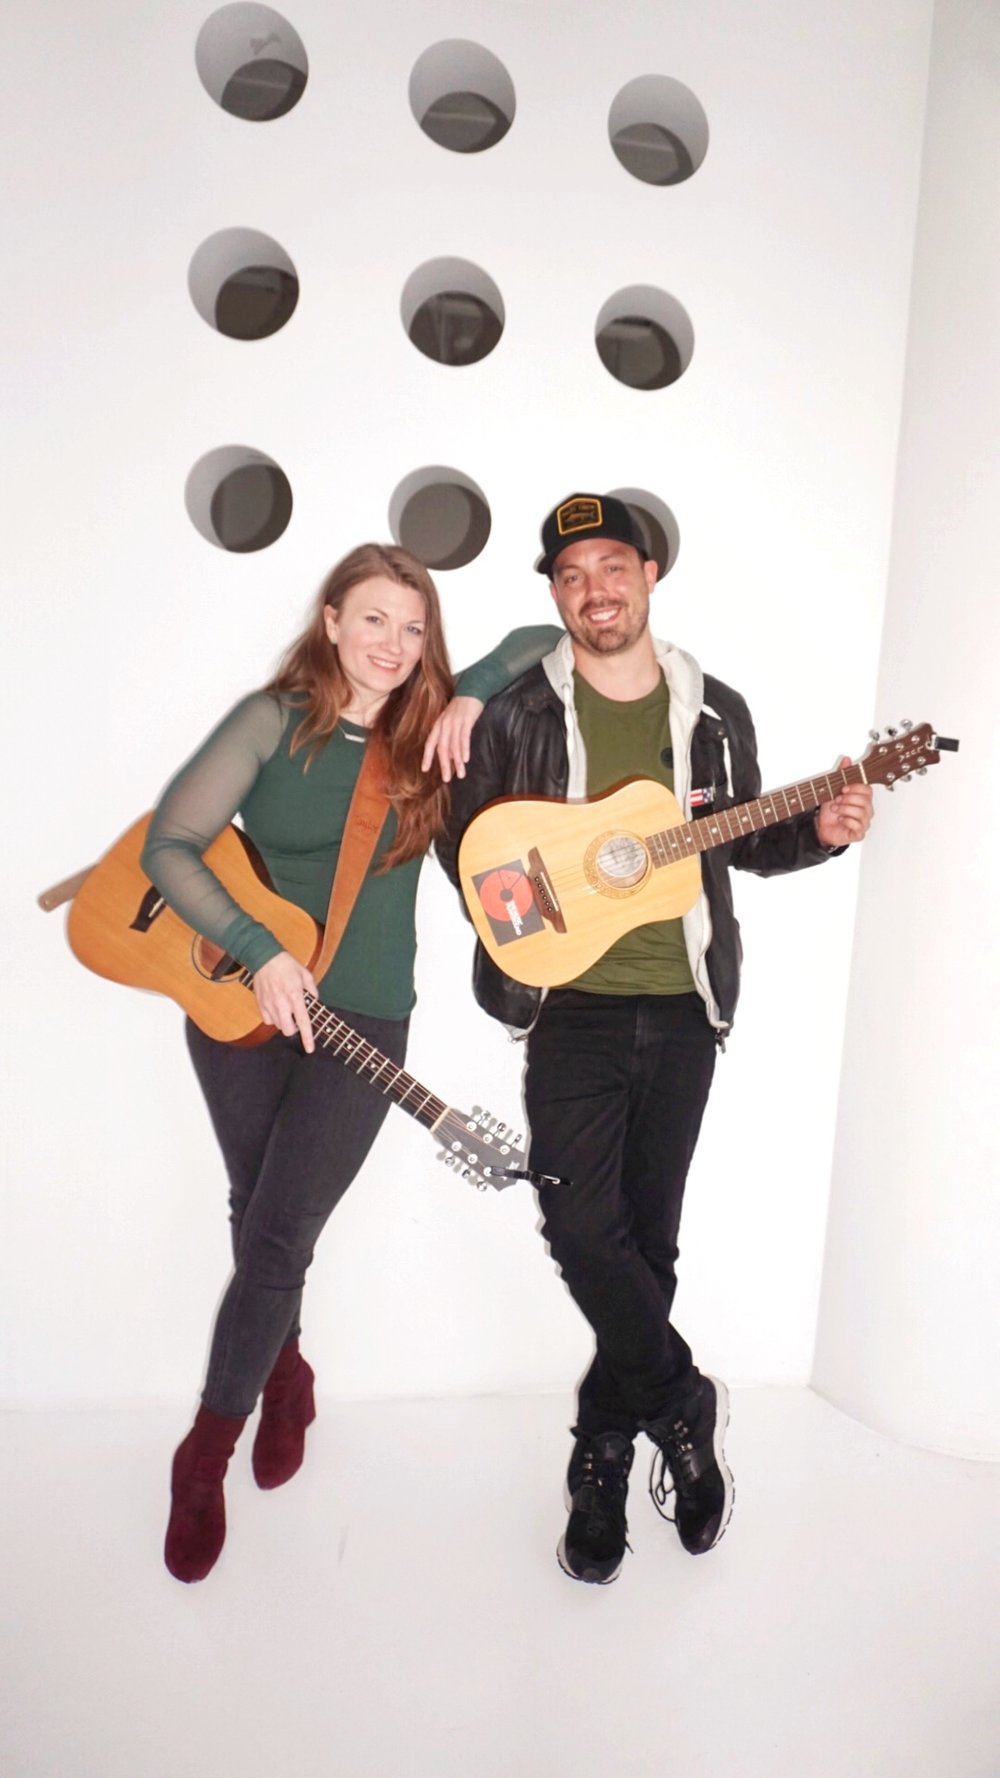 Kathryn and Andrew. Folk Band or co-founders?